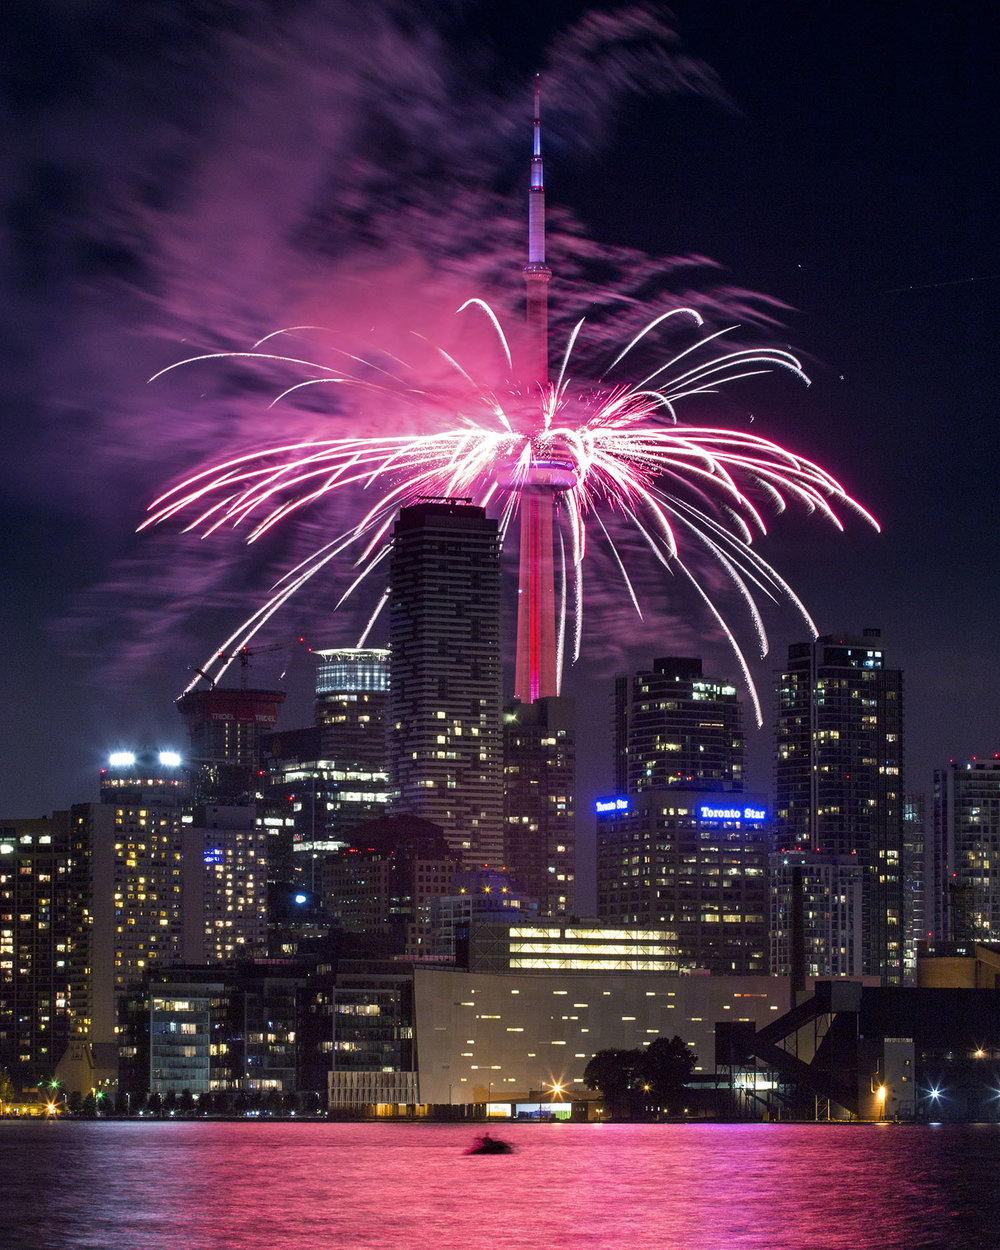 Fireworks shooting off the CN Tower for Canada Day 150 Celebrations in Toronto, Ontario. Image by Dennis Marciniak of denMAR Media.